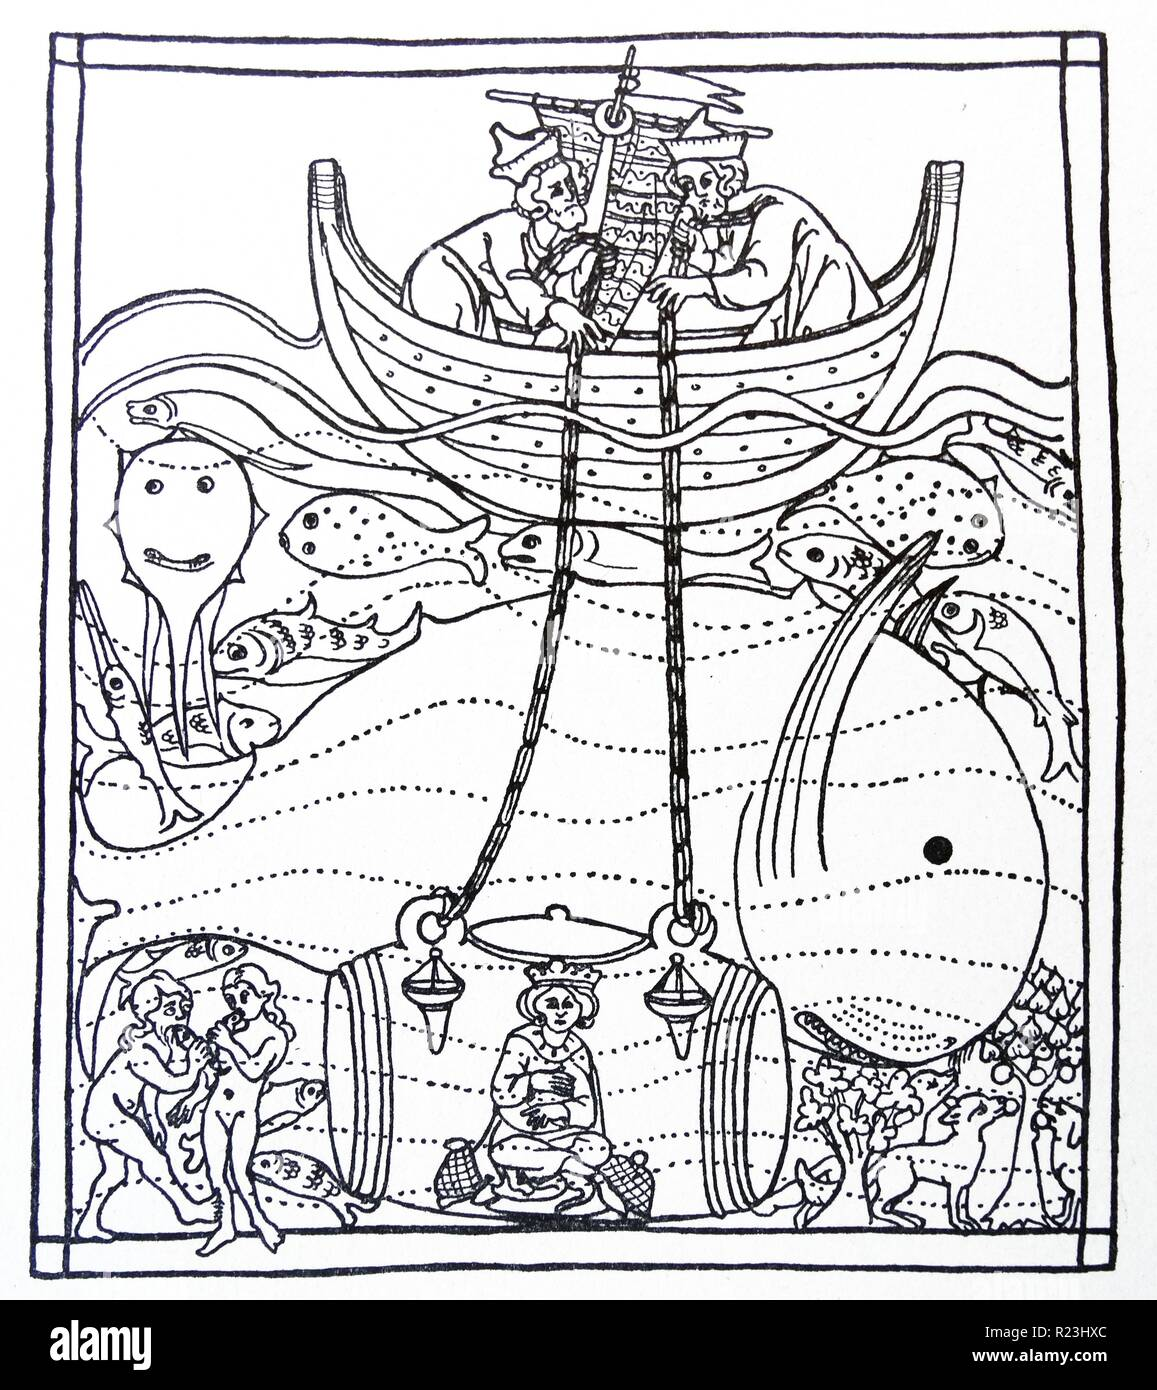 Mediaeval line drawing of Alexander the Great descending to the bottom of the sea in a glass barrel to study the fishes. Dated 12th Century - Stock Image